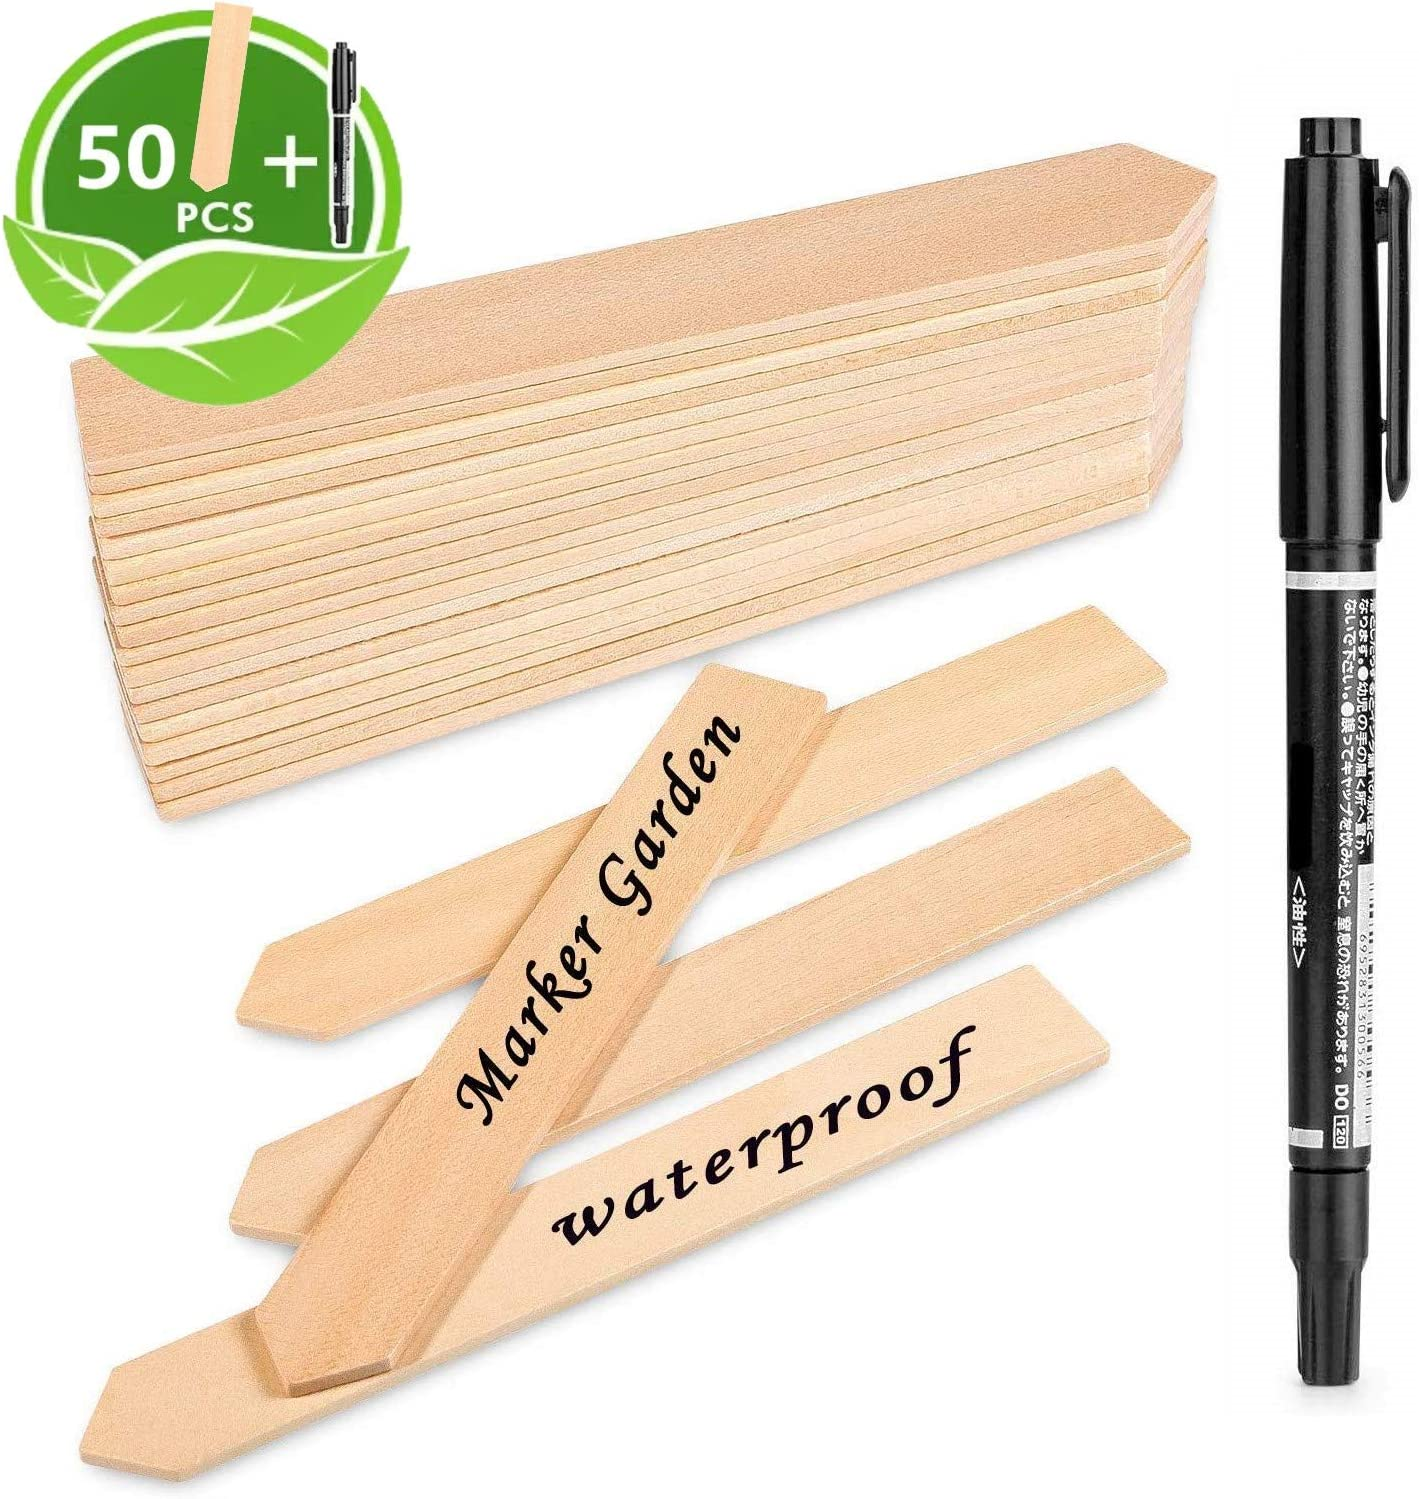 with A Marker Pen 15 x 2cm Waterproof Pointed Plant Sign Tags Eco-Friendly Garden Markers for Seed Potted Herbs Flowers Vegetables LATERN 50Pcs Wooden Plant Labels